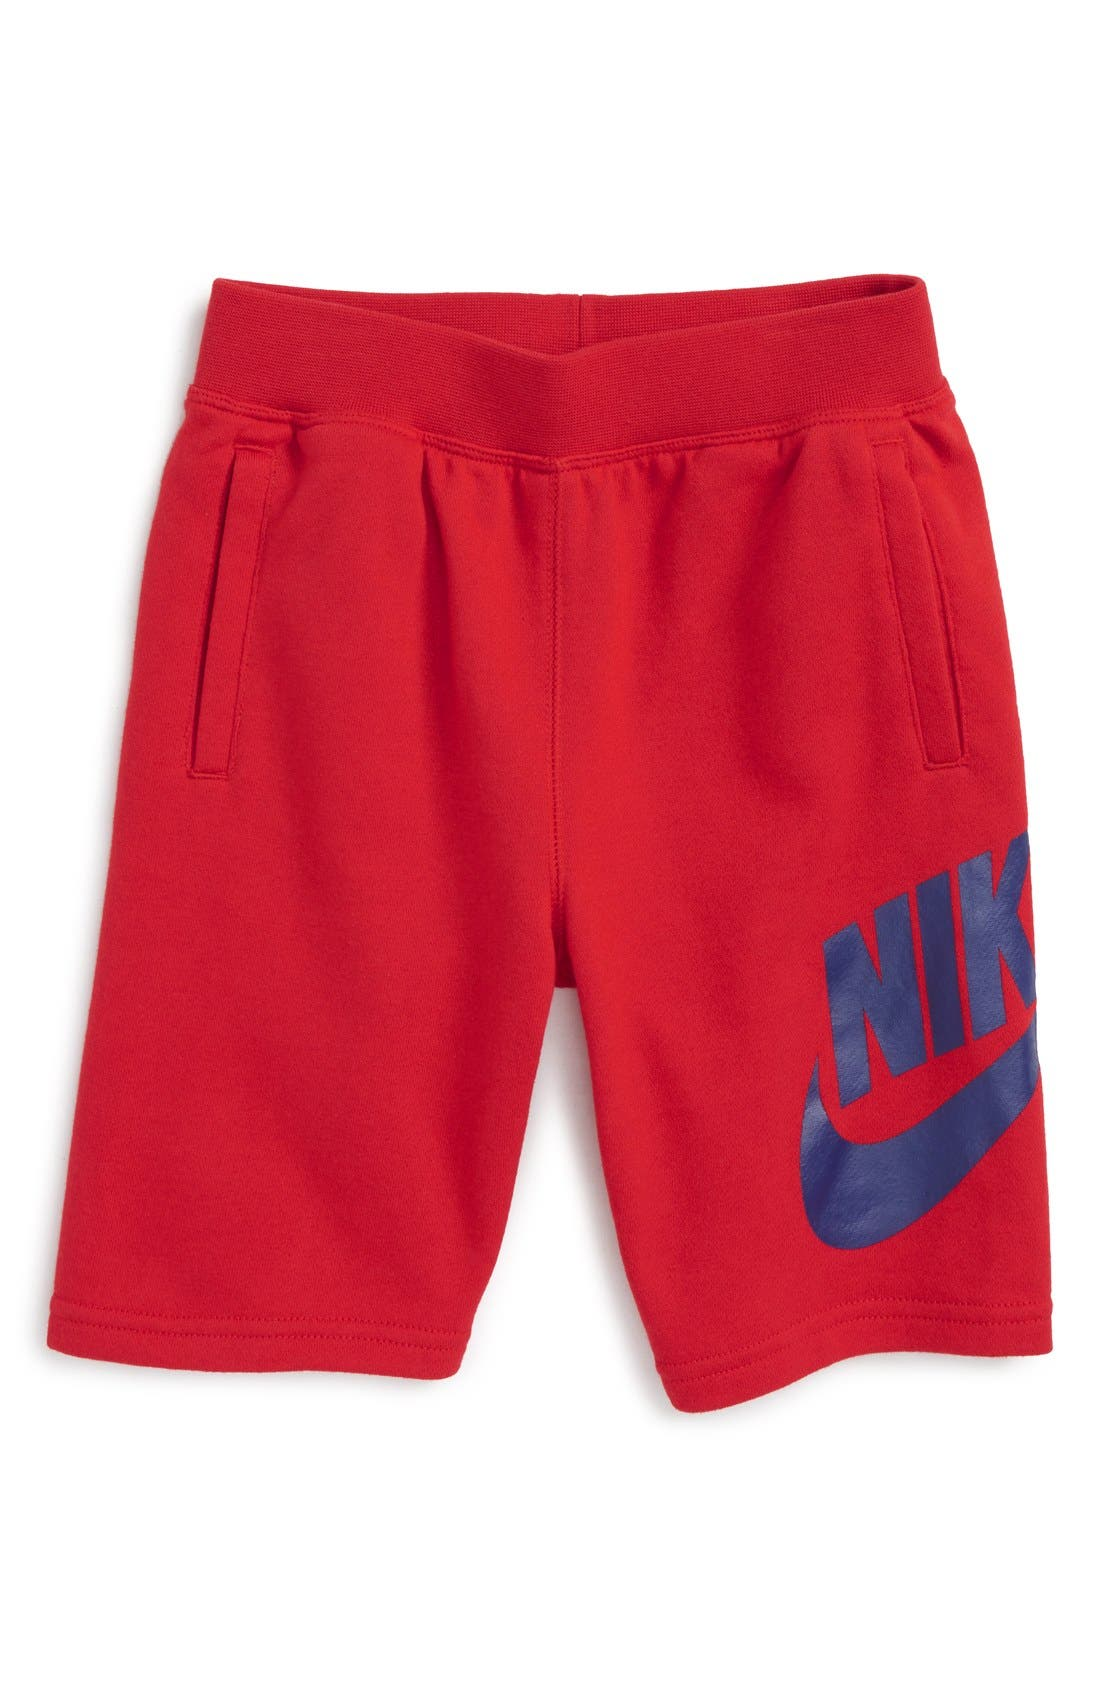 Alumni French Terry Knit Shorts,                             Main thumbnail 1, color,                             University Red